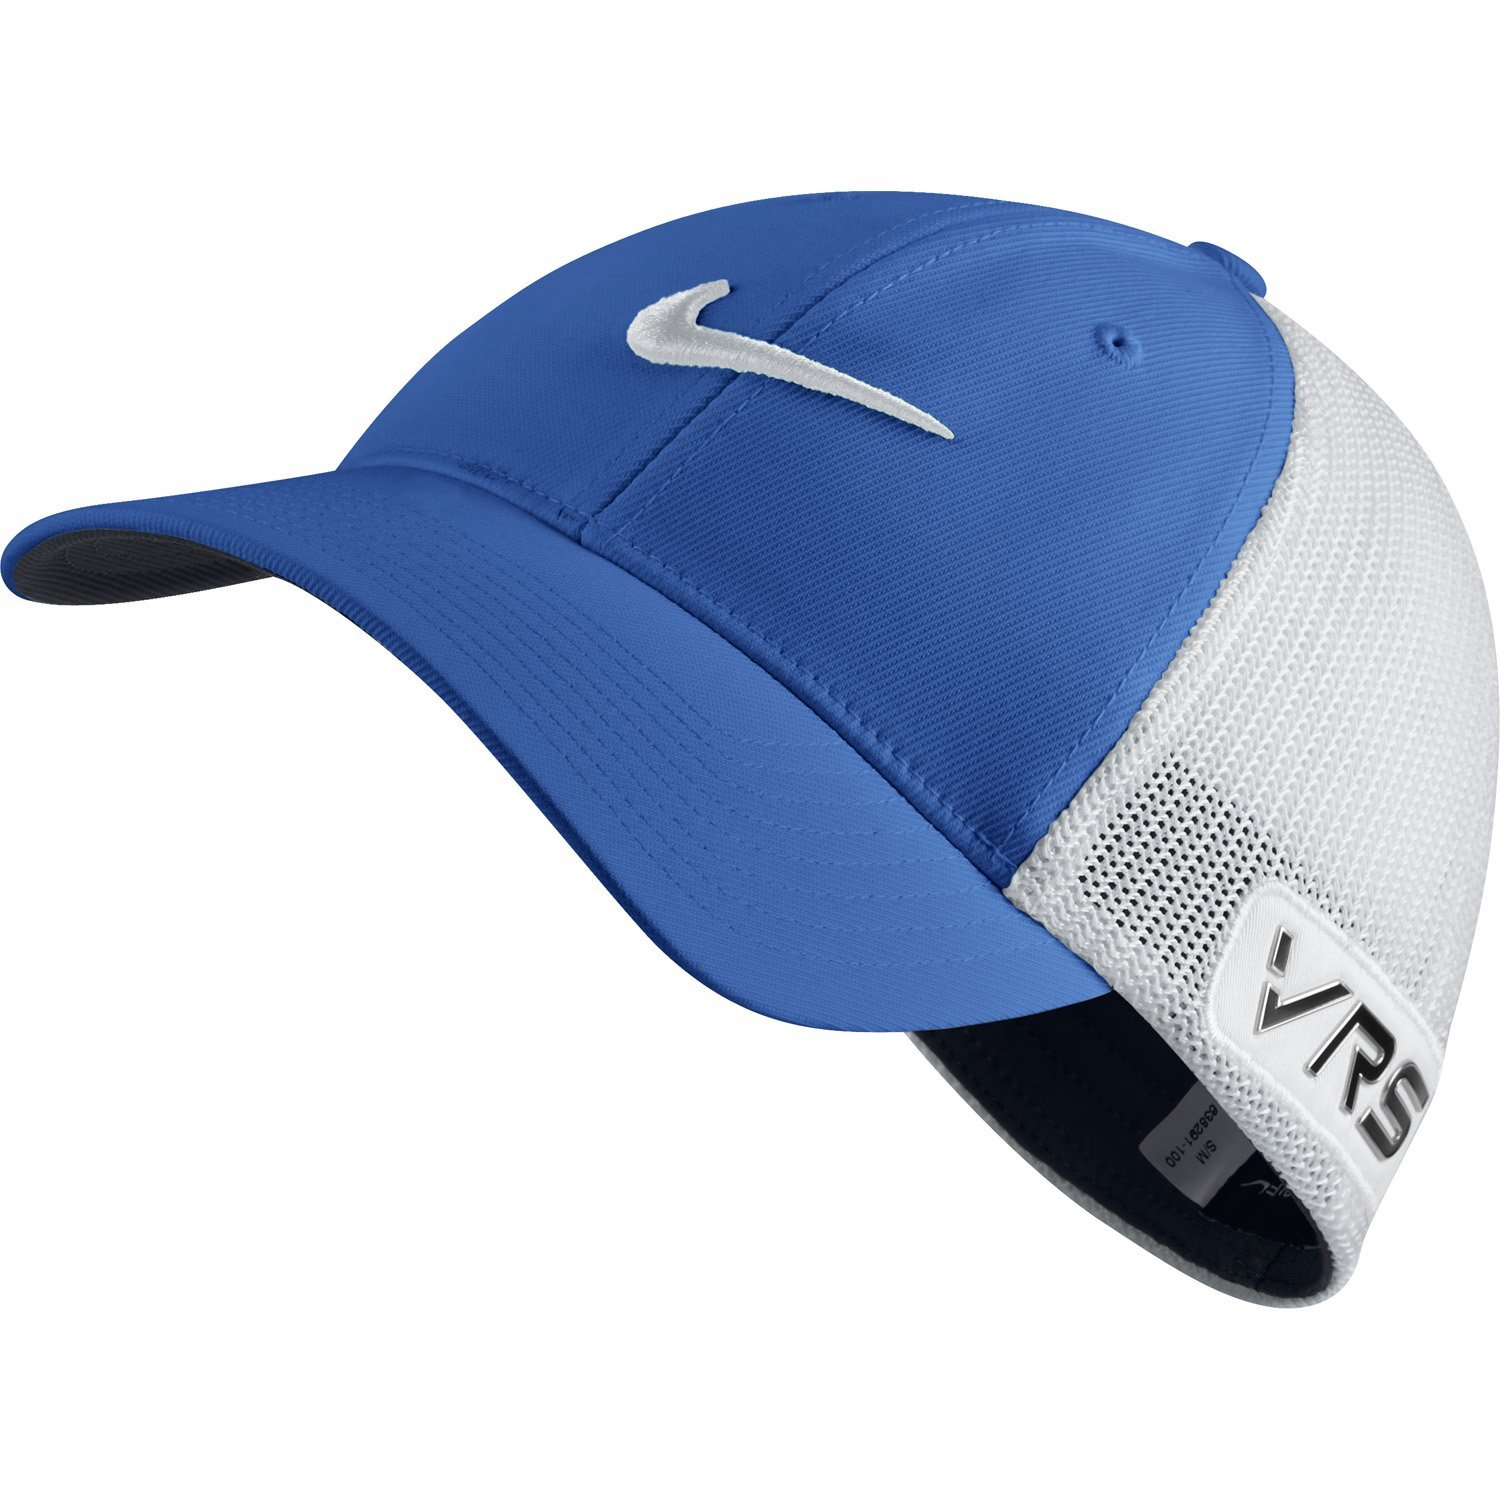 c0116790 Get Quotations · Nike GOLF TOUR FLEX-FIT CAP new logo GAME  ROYAL/WHITE/WHITE M